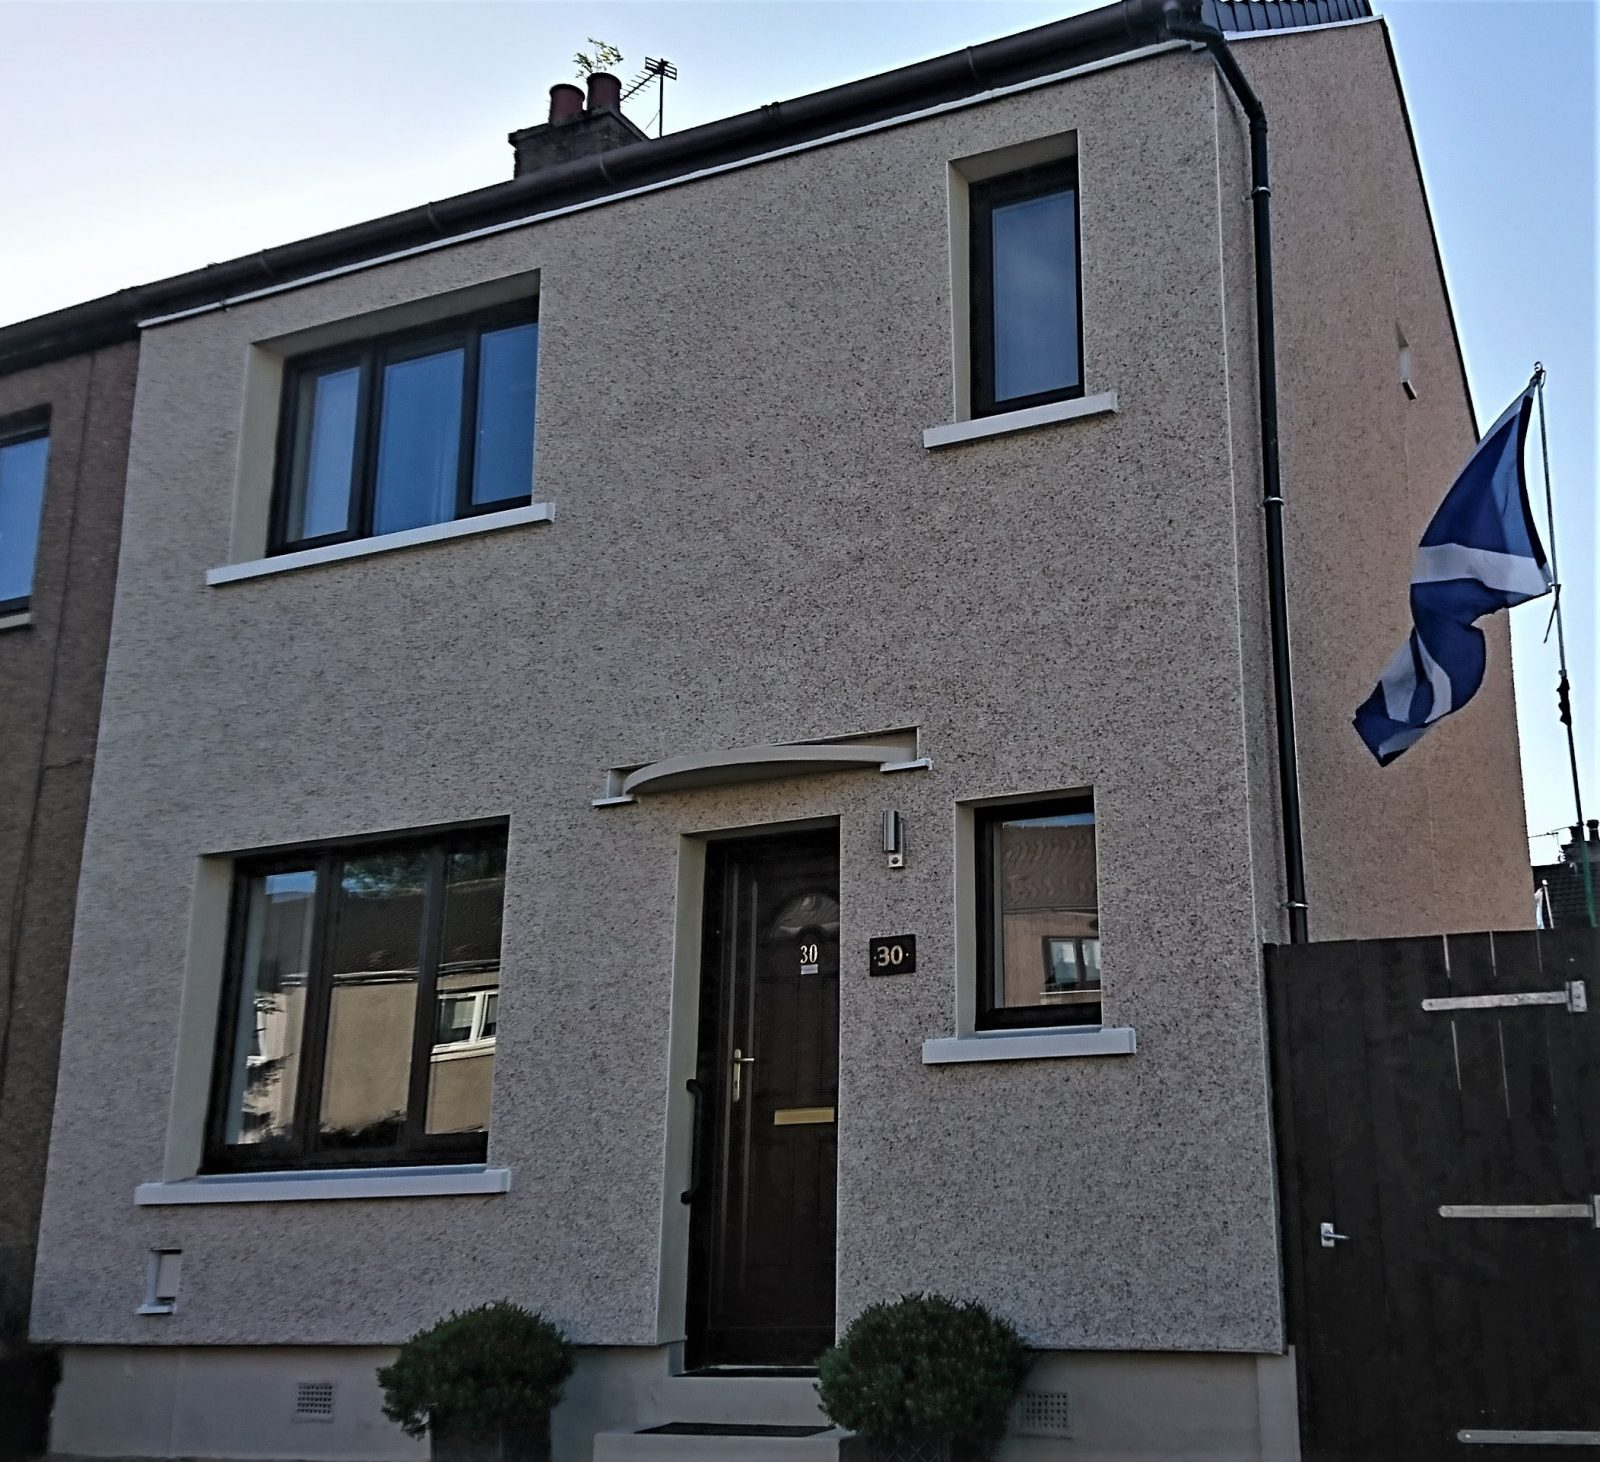 roughcasting-Edinburgh-roughcast-render-Edinburgh